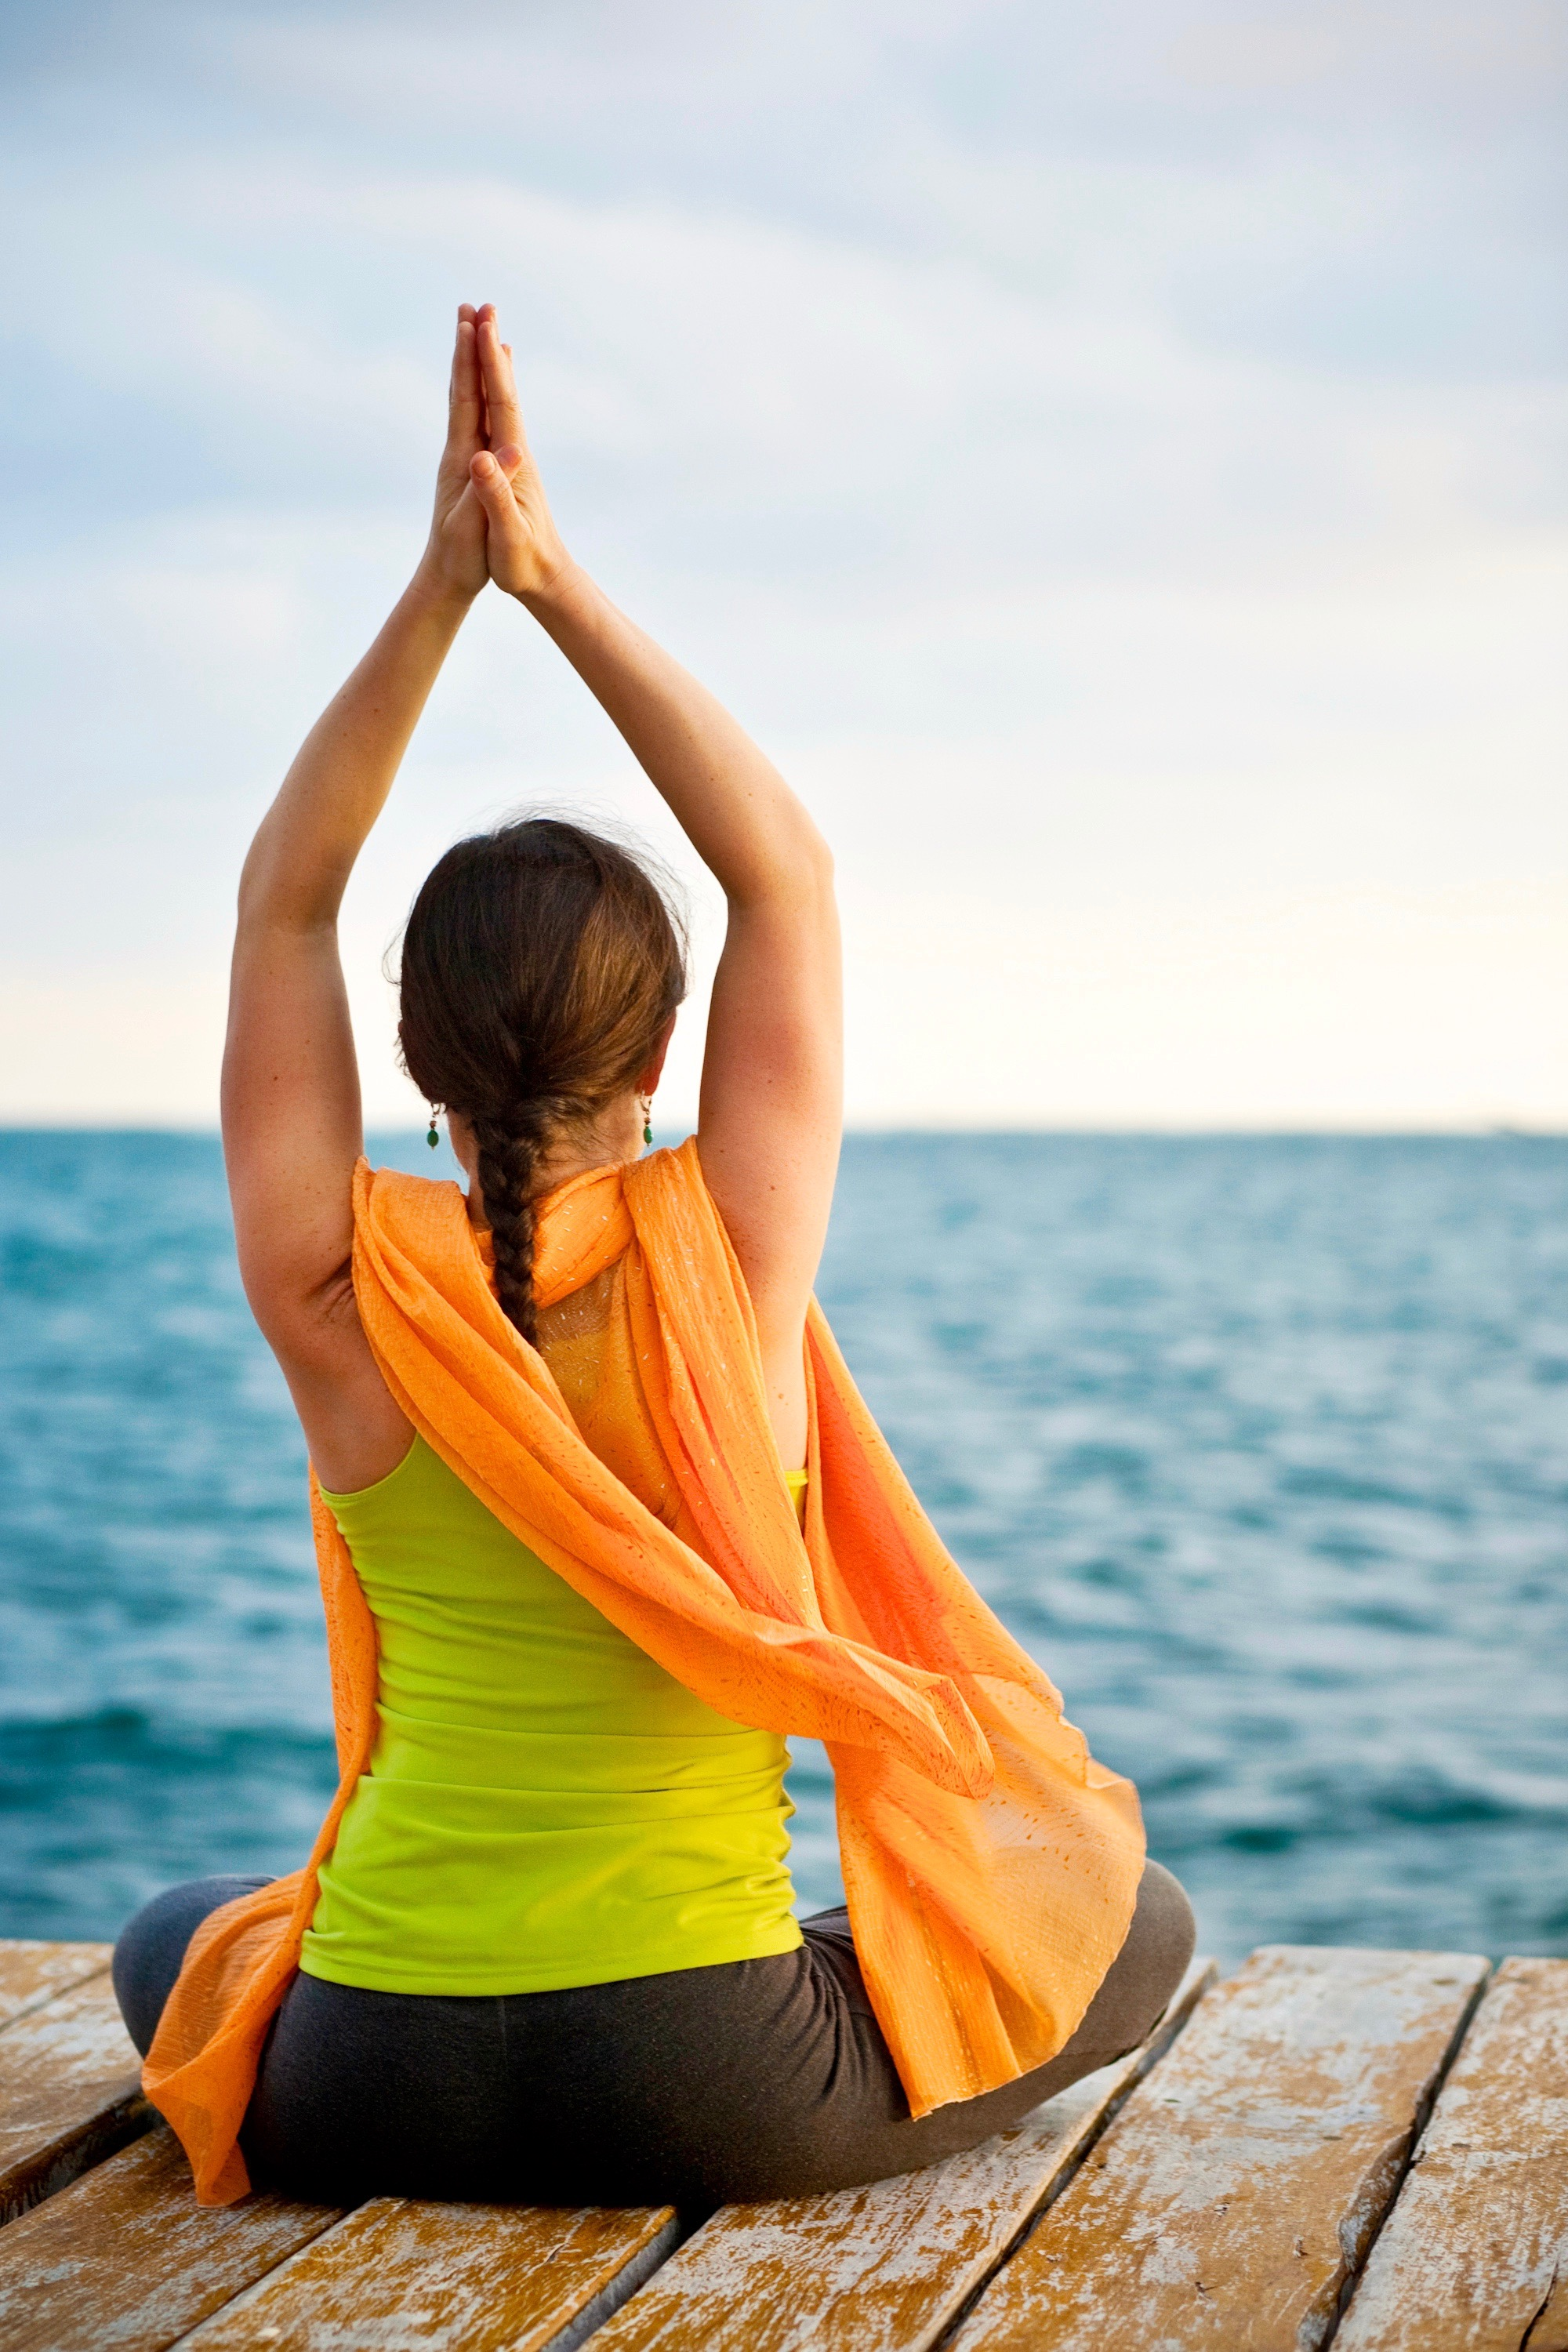 Seated yoga posture on a dock by the water